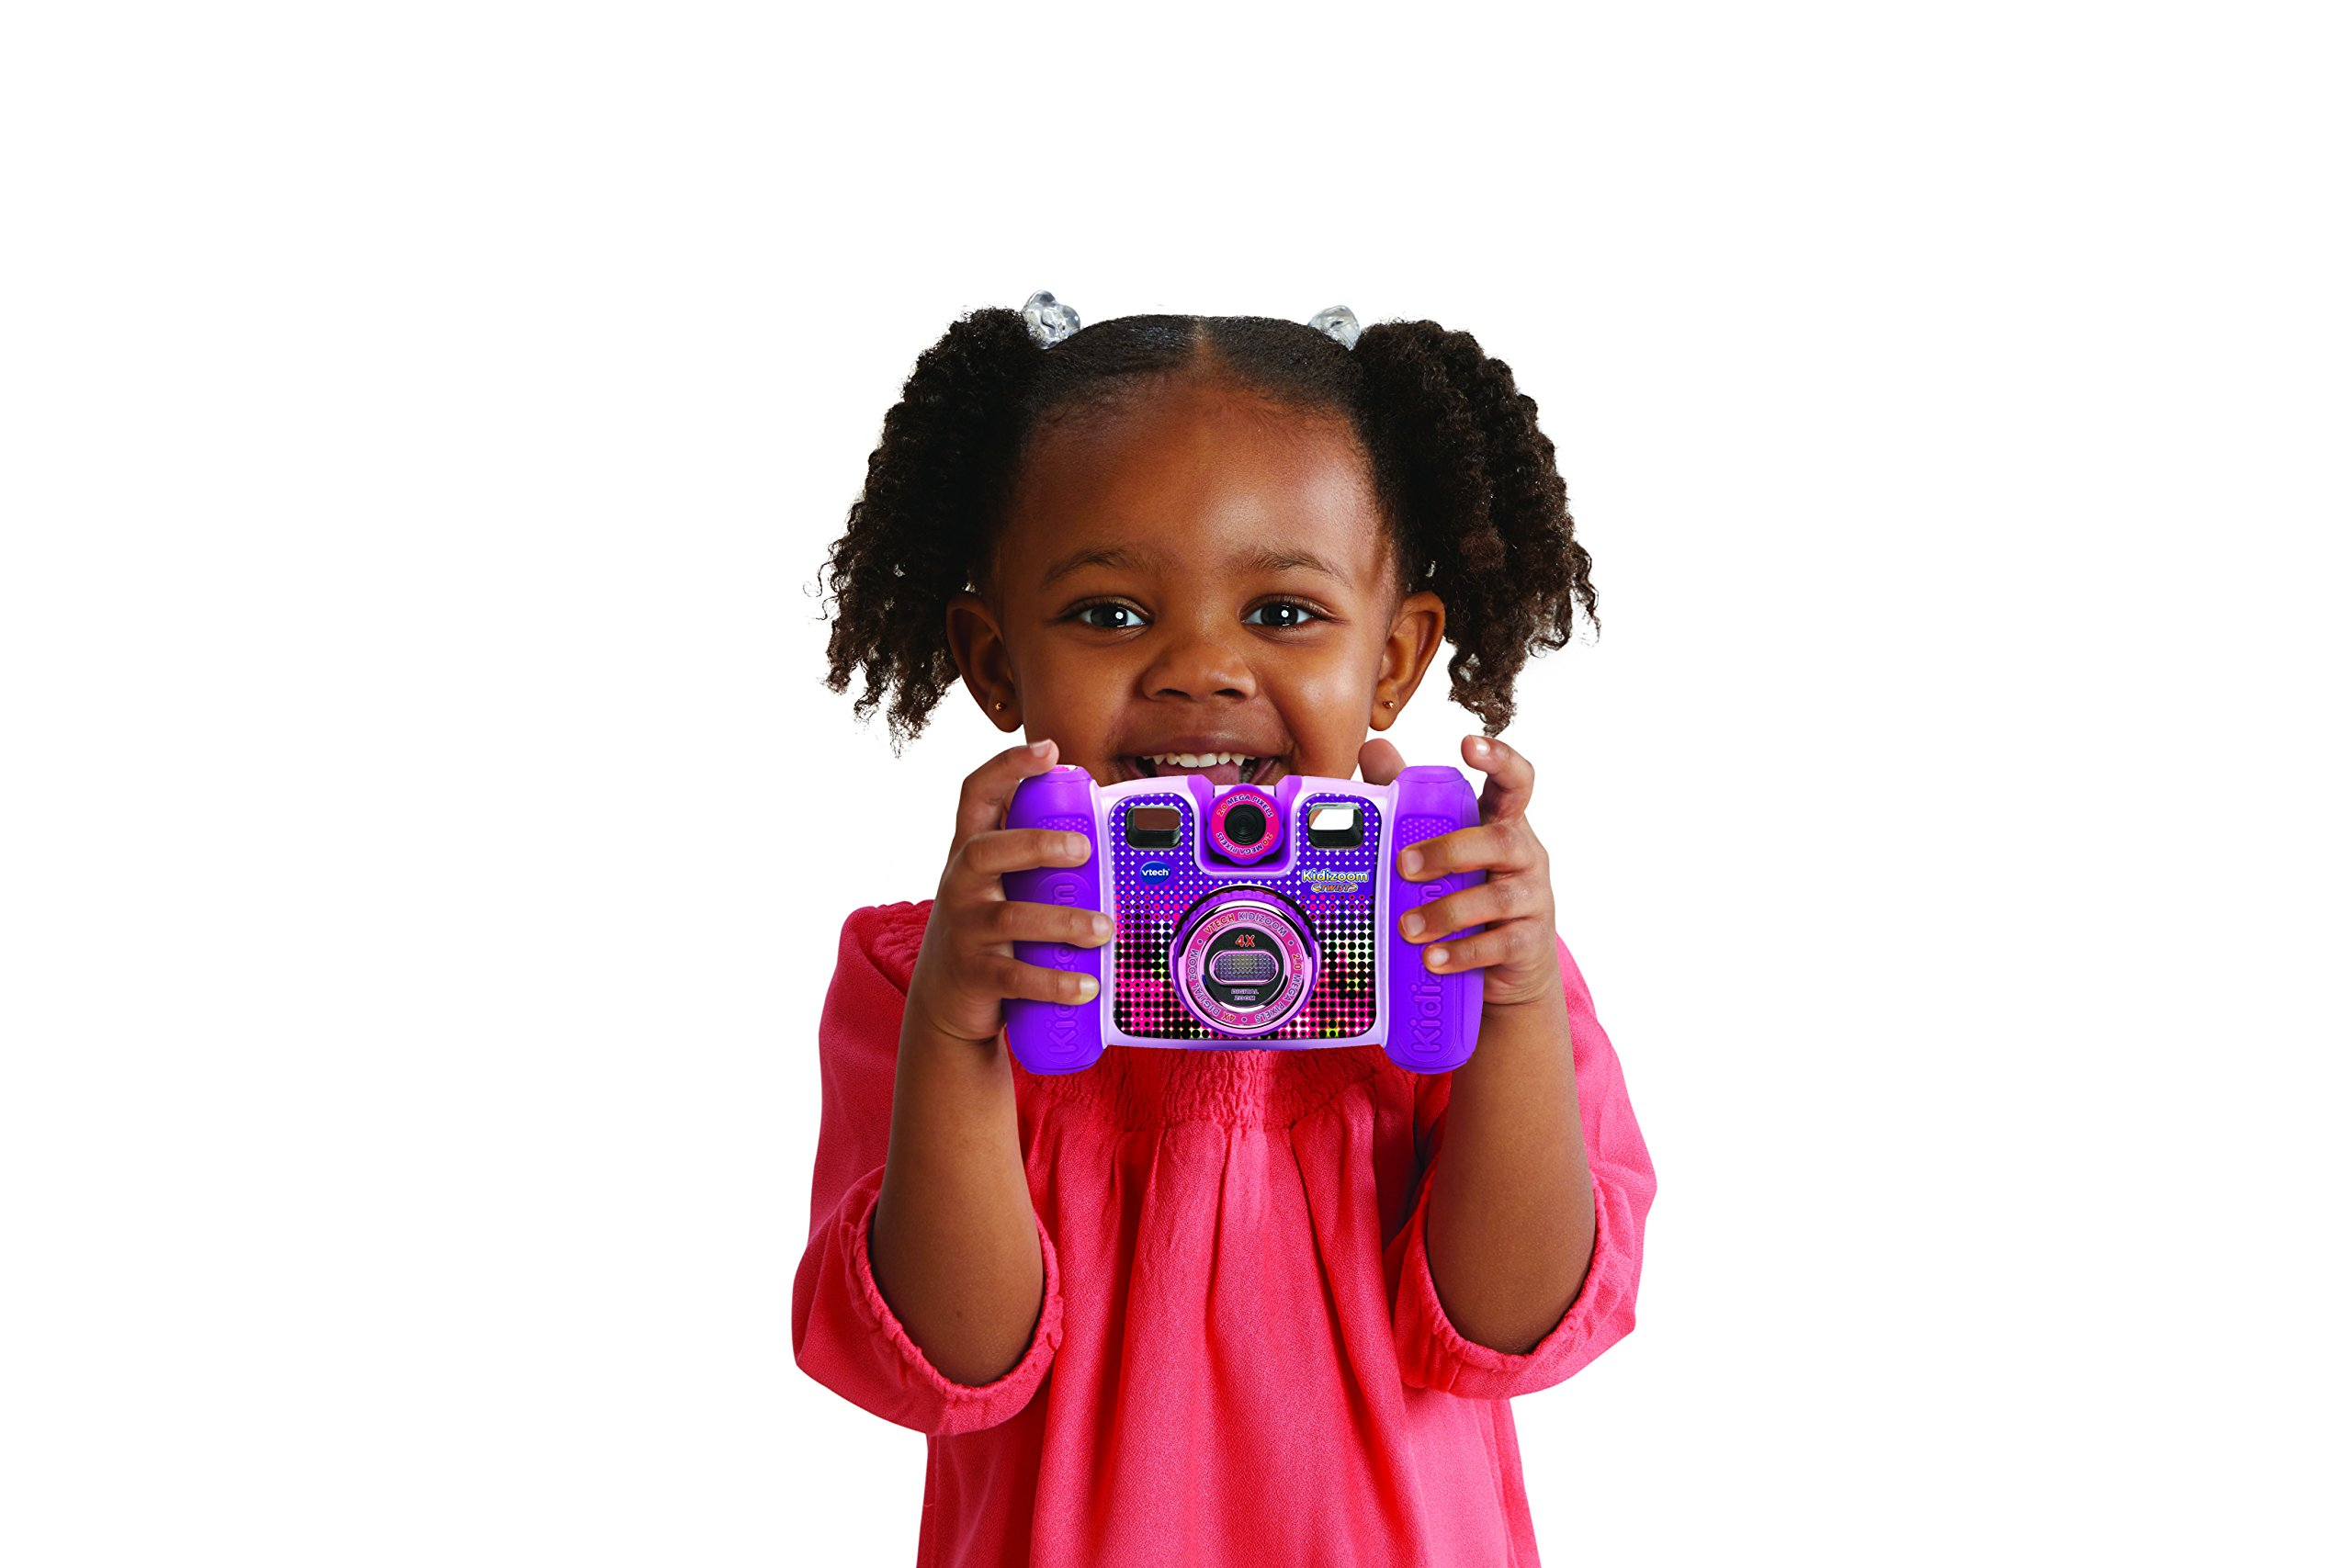 VTech Kidizoom Twist Connect Camera, Purple by VTech (Image #8)